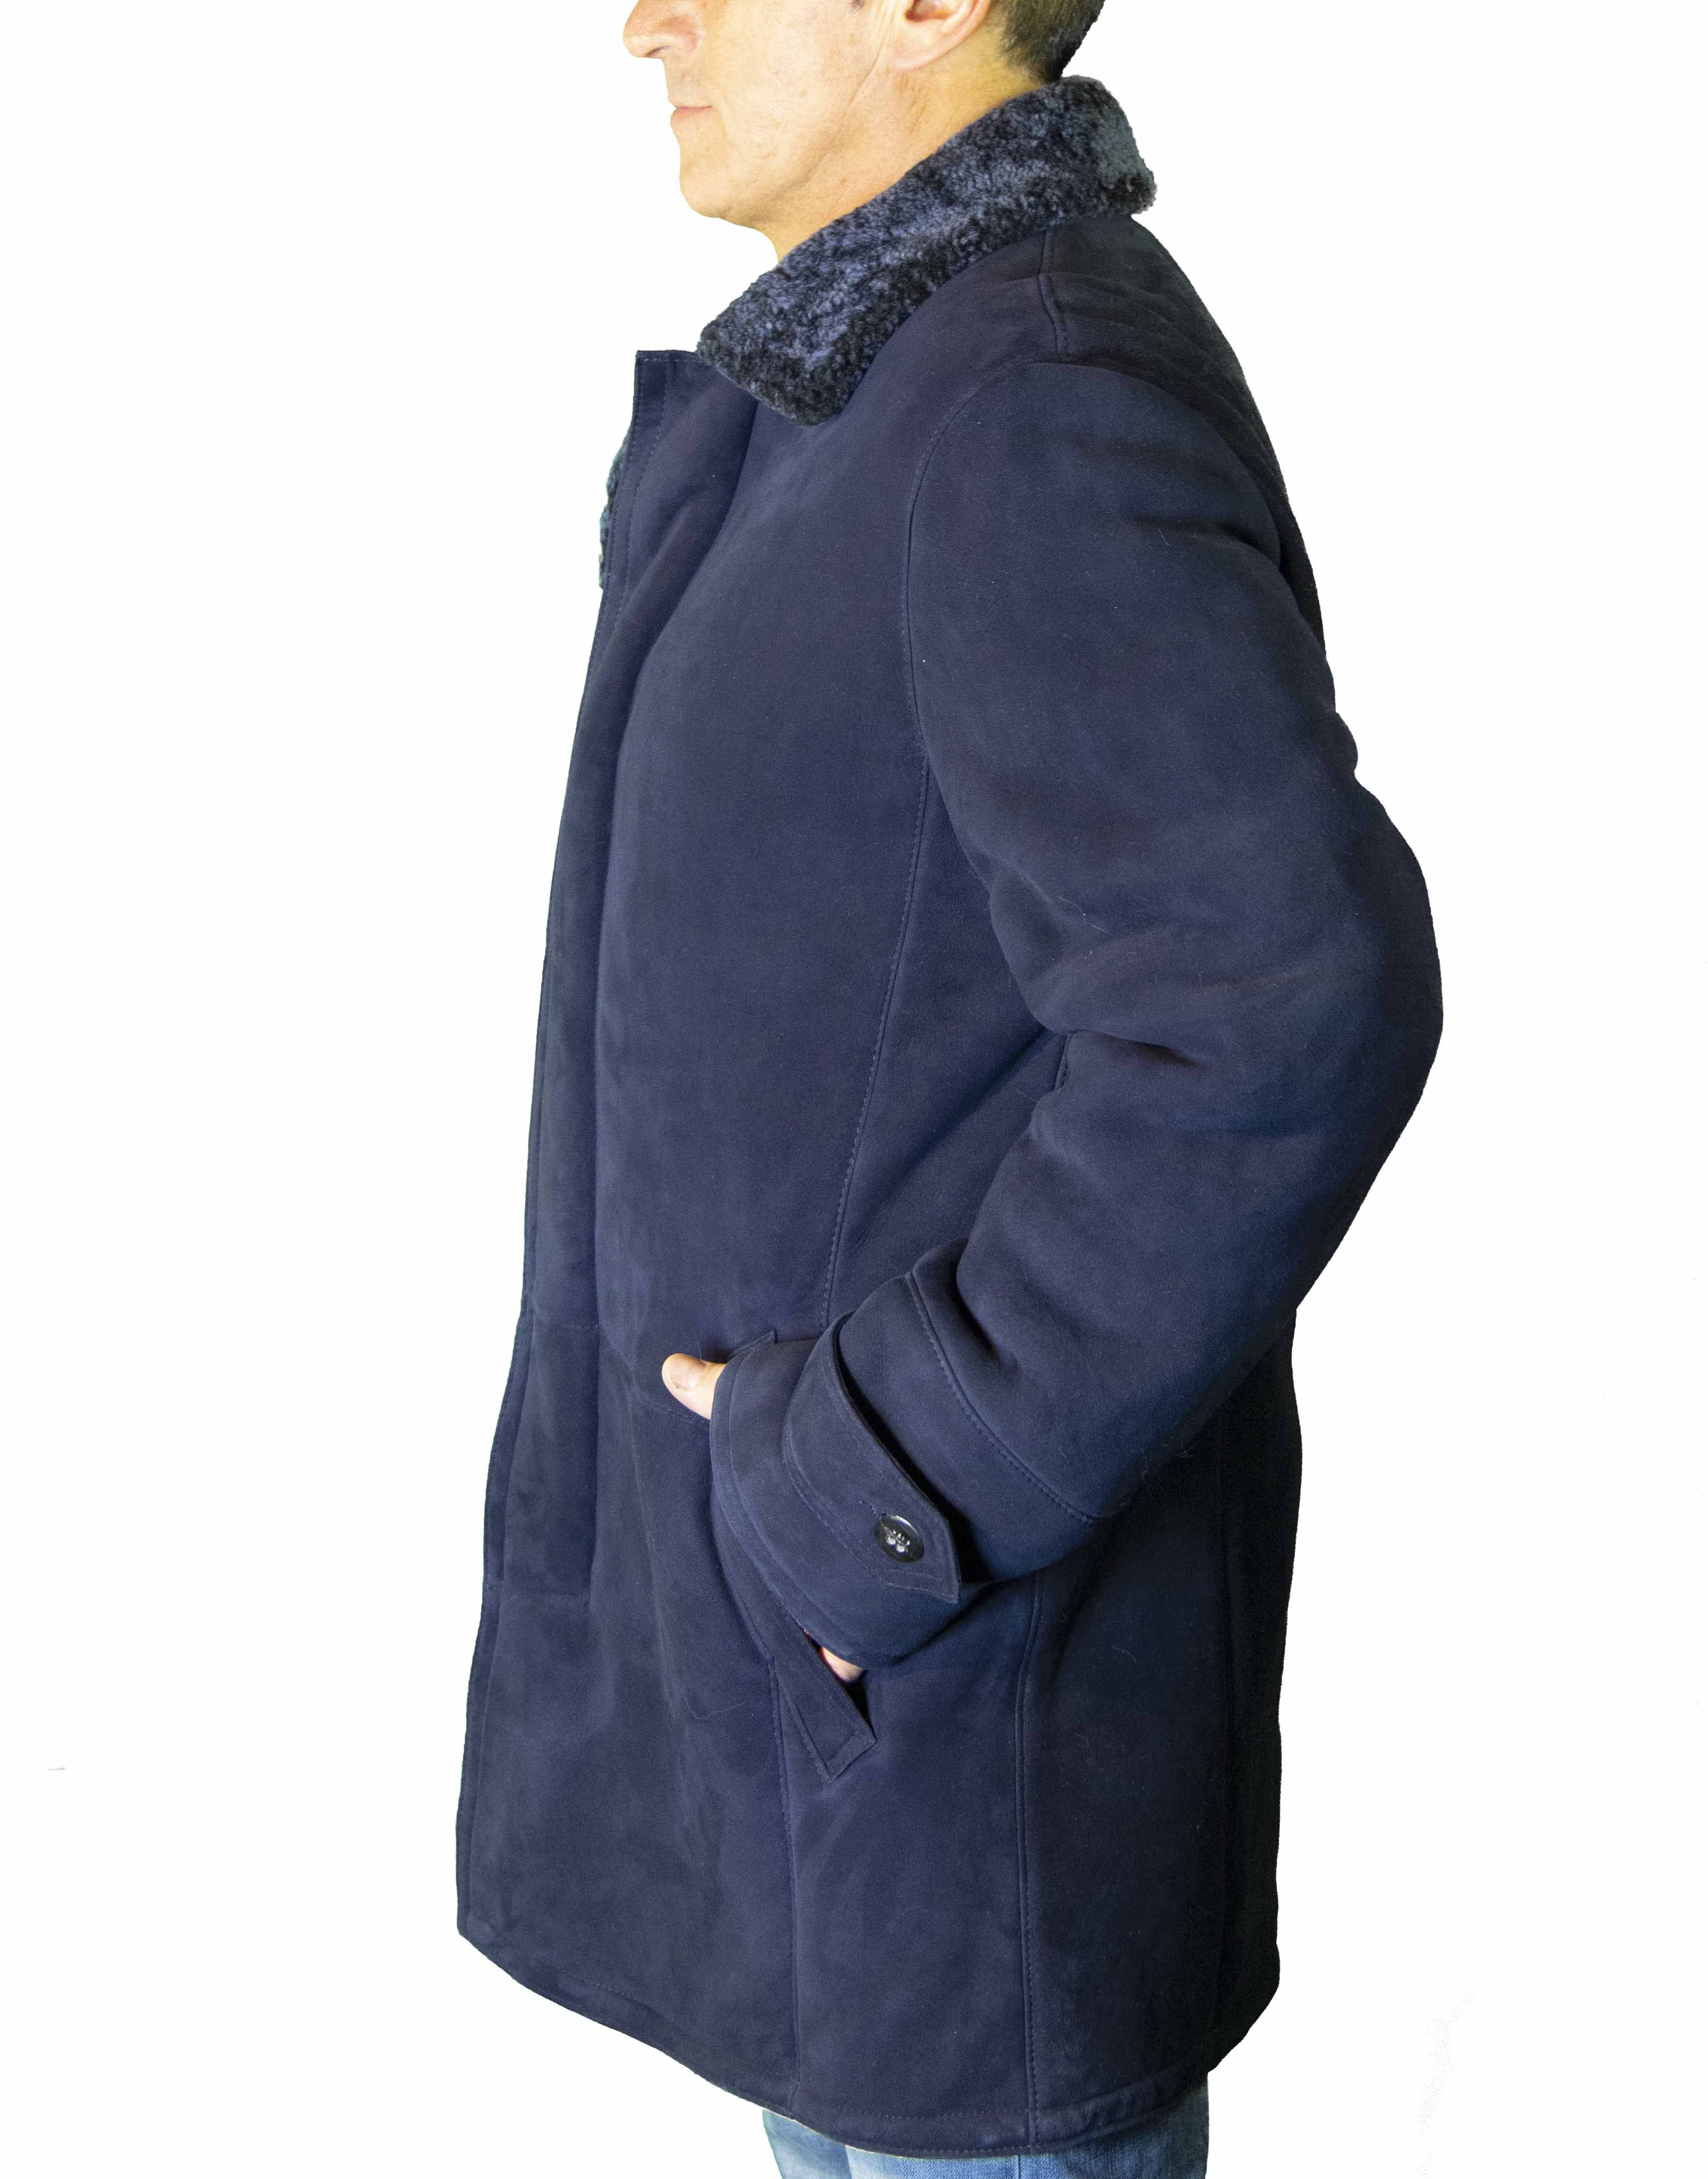 Royal Cut Suede Shearling Button- Down Jacket B/L 35""